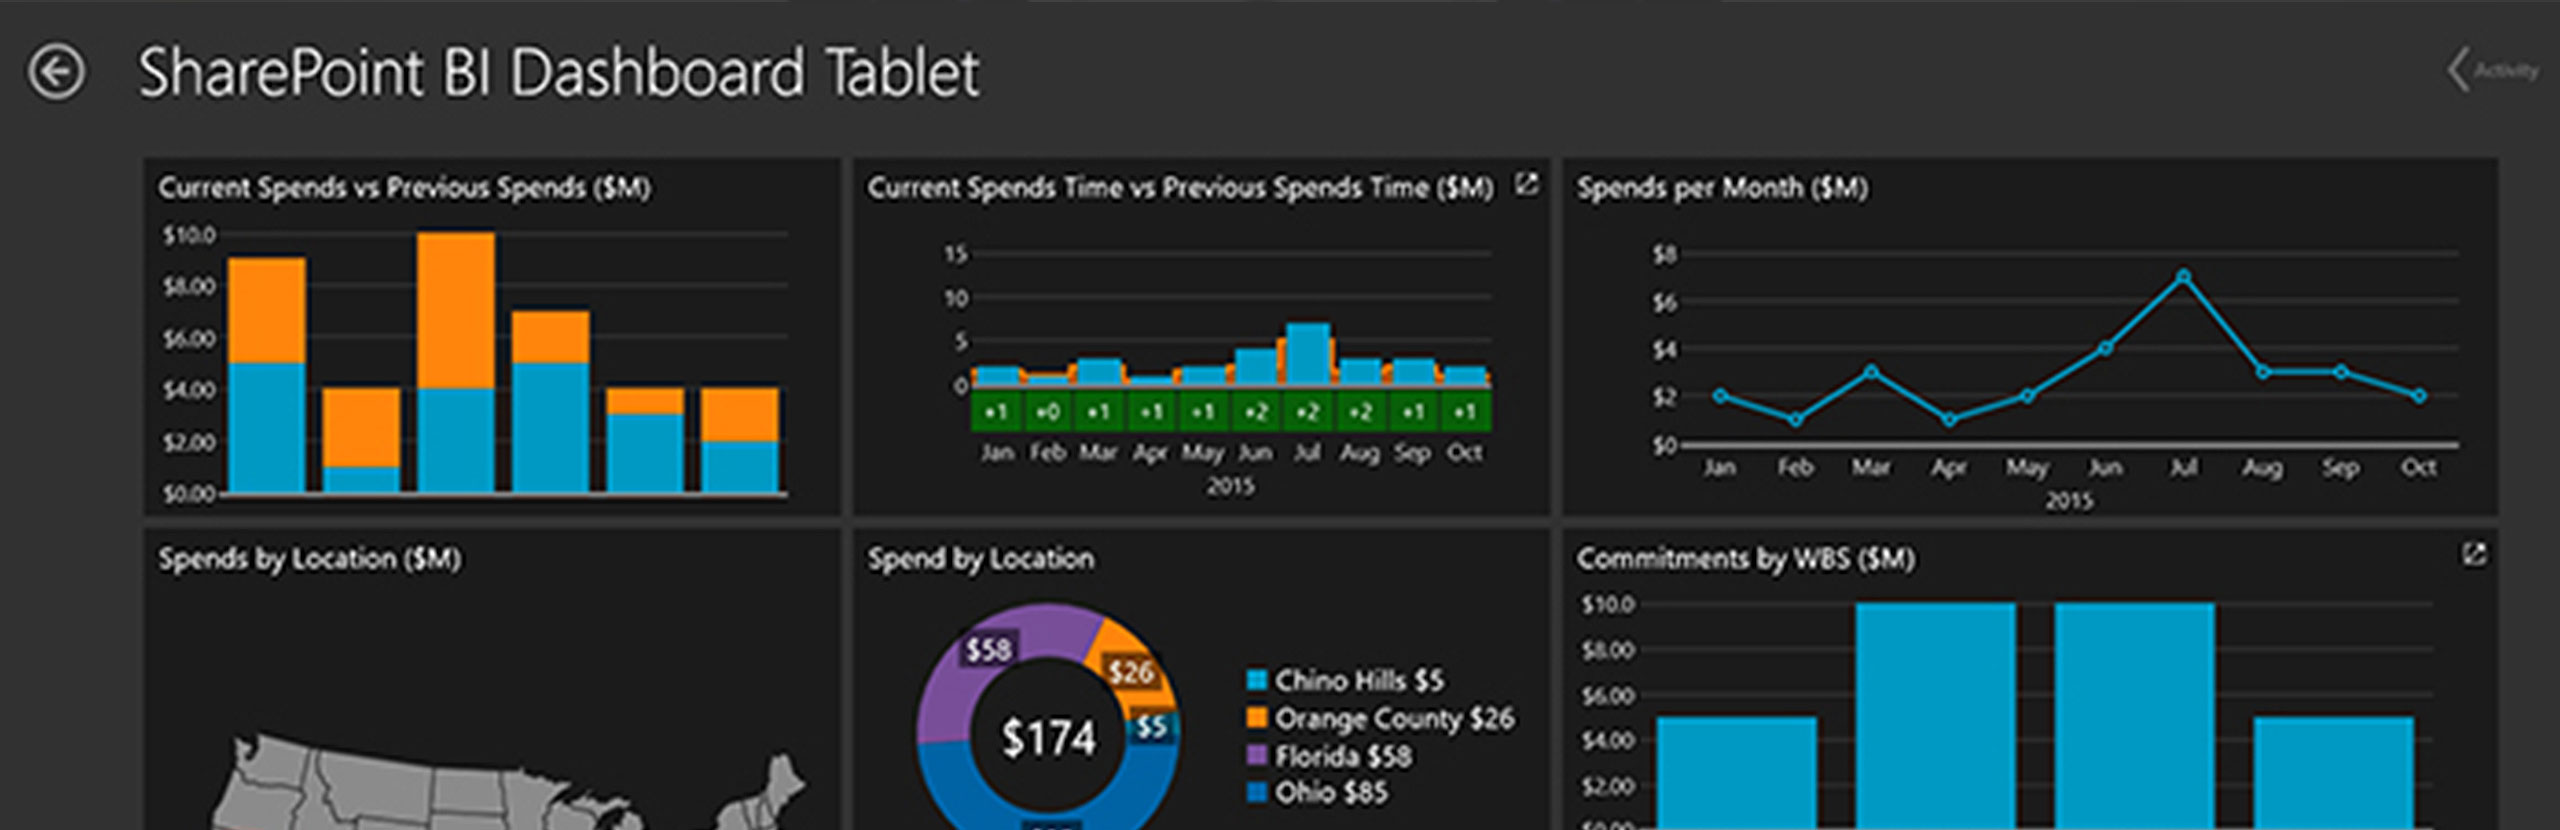 Mobile dashboards for construction project management for Sharepoint dashboard templates